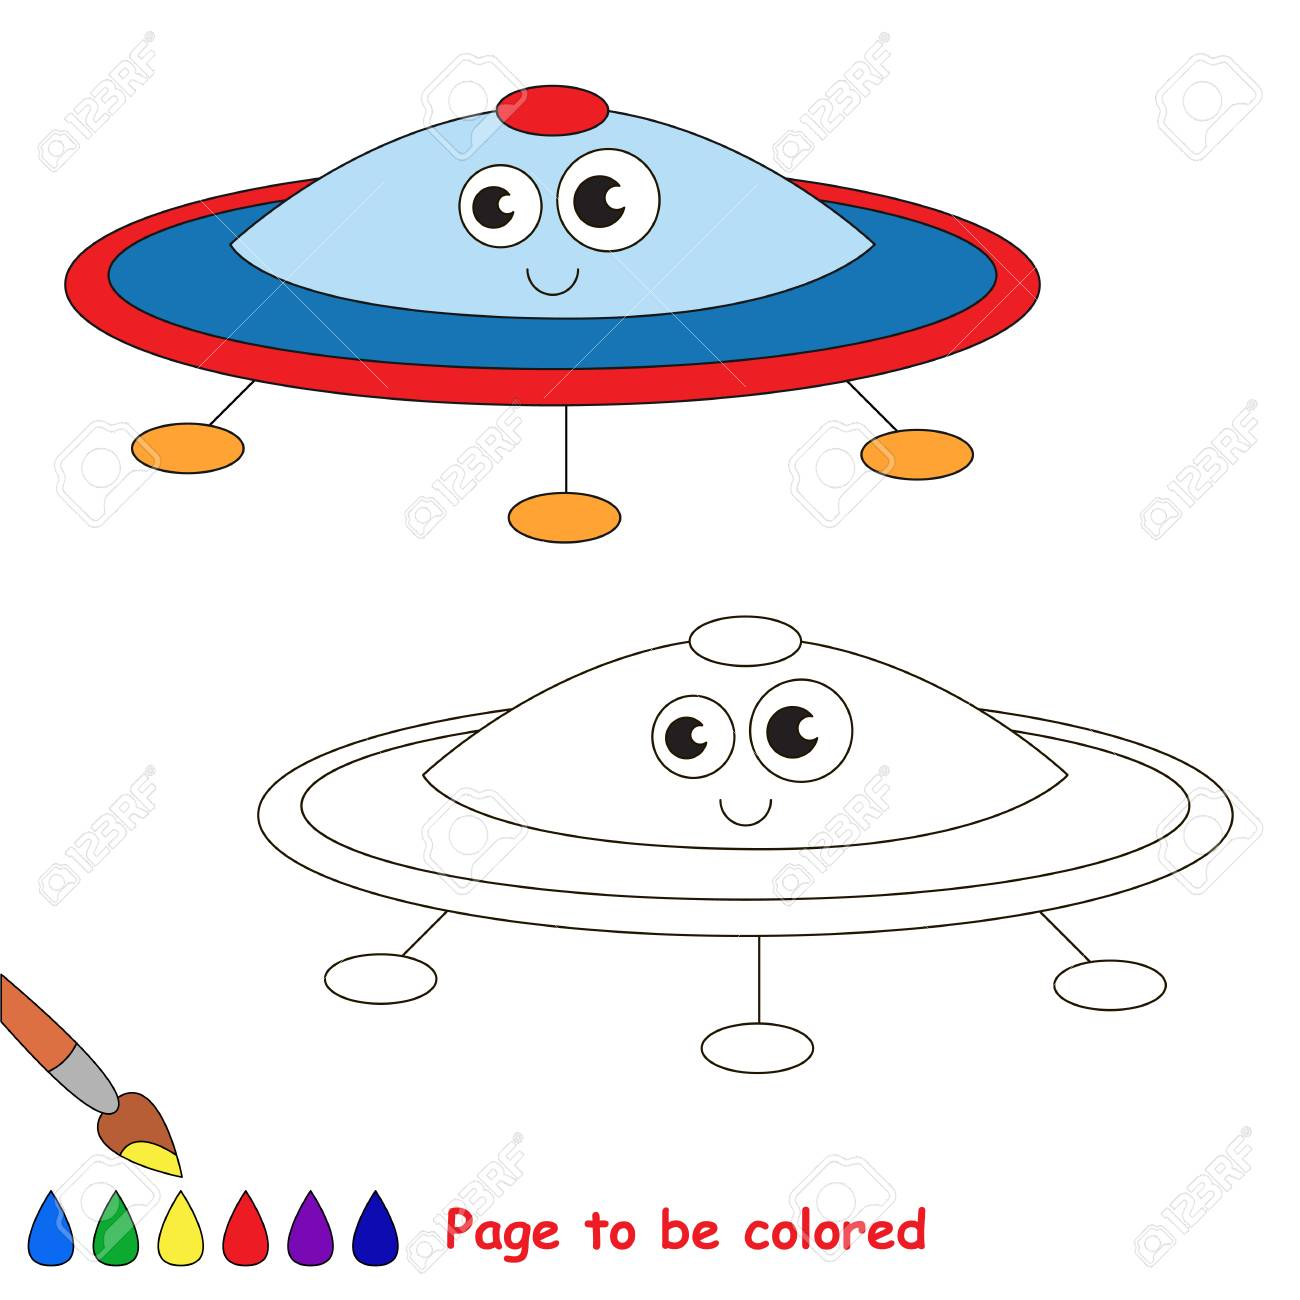 Ufo To Be Colored The Coloring Book For Preschool Kids With